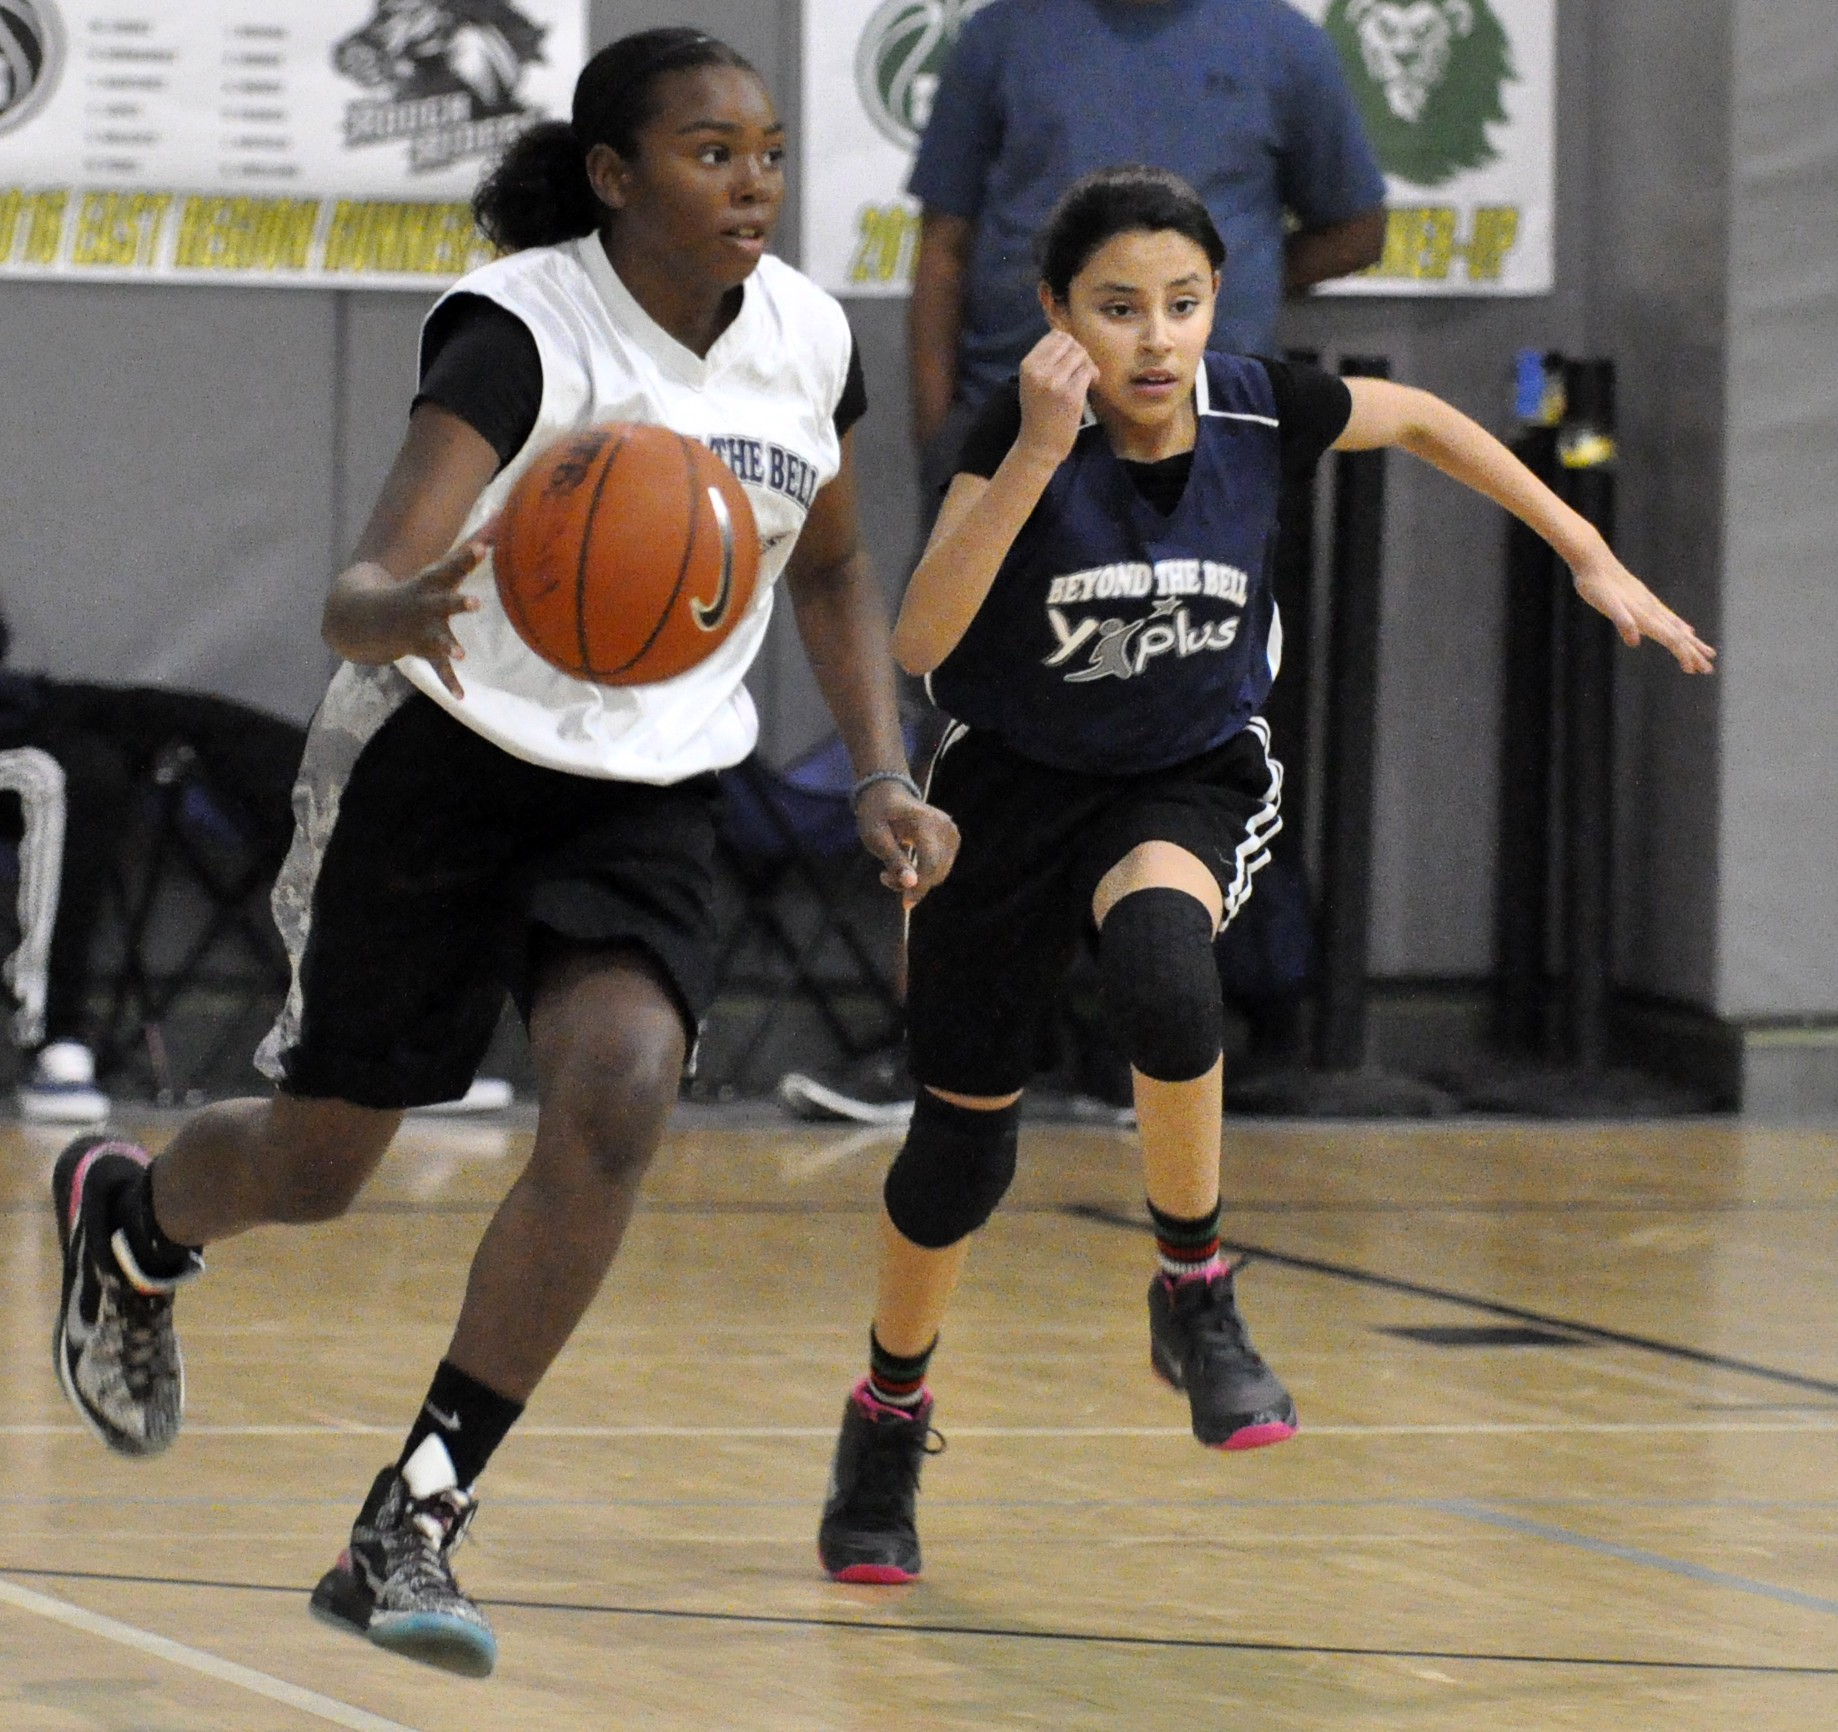 Stay In School: Youth Sports On Campus - LA84 Foundation